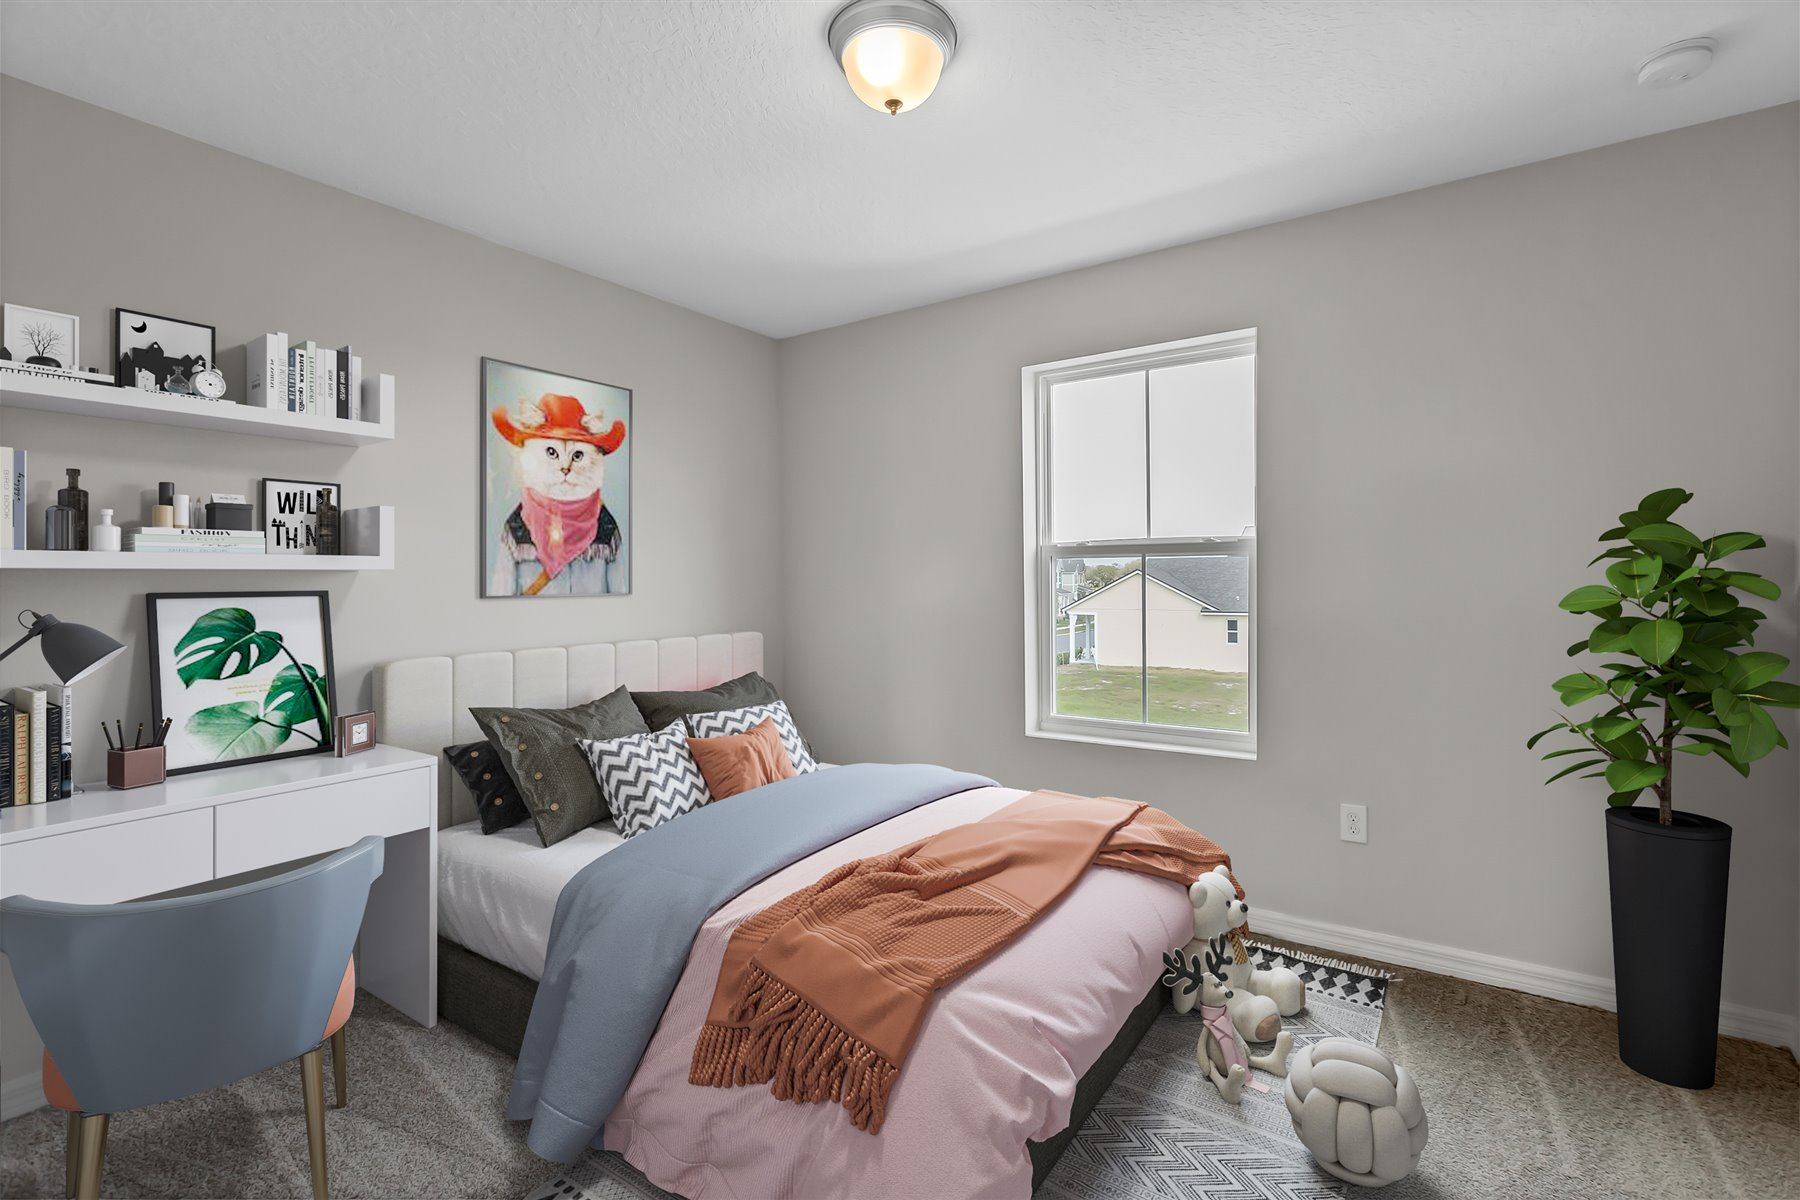 Graham Plan Bedroom at Tohoqua in Kissimmee Florida by Mattamy Homes